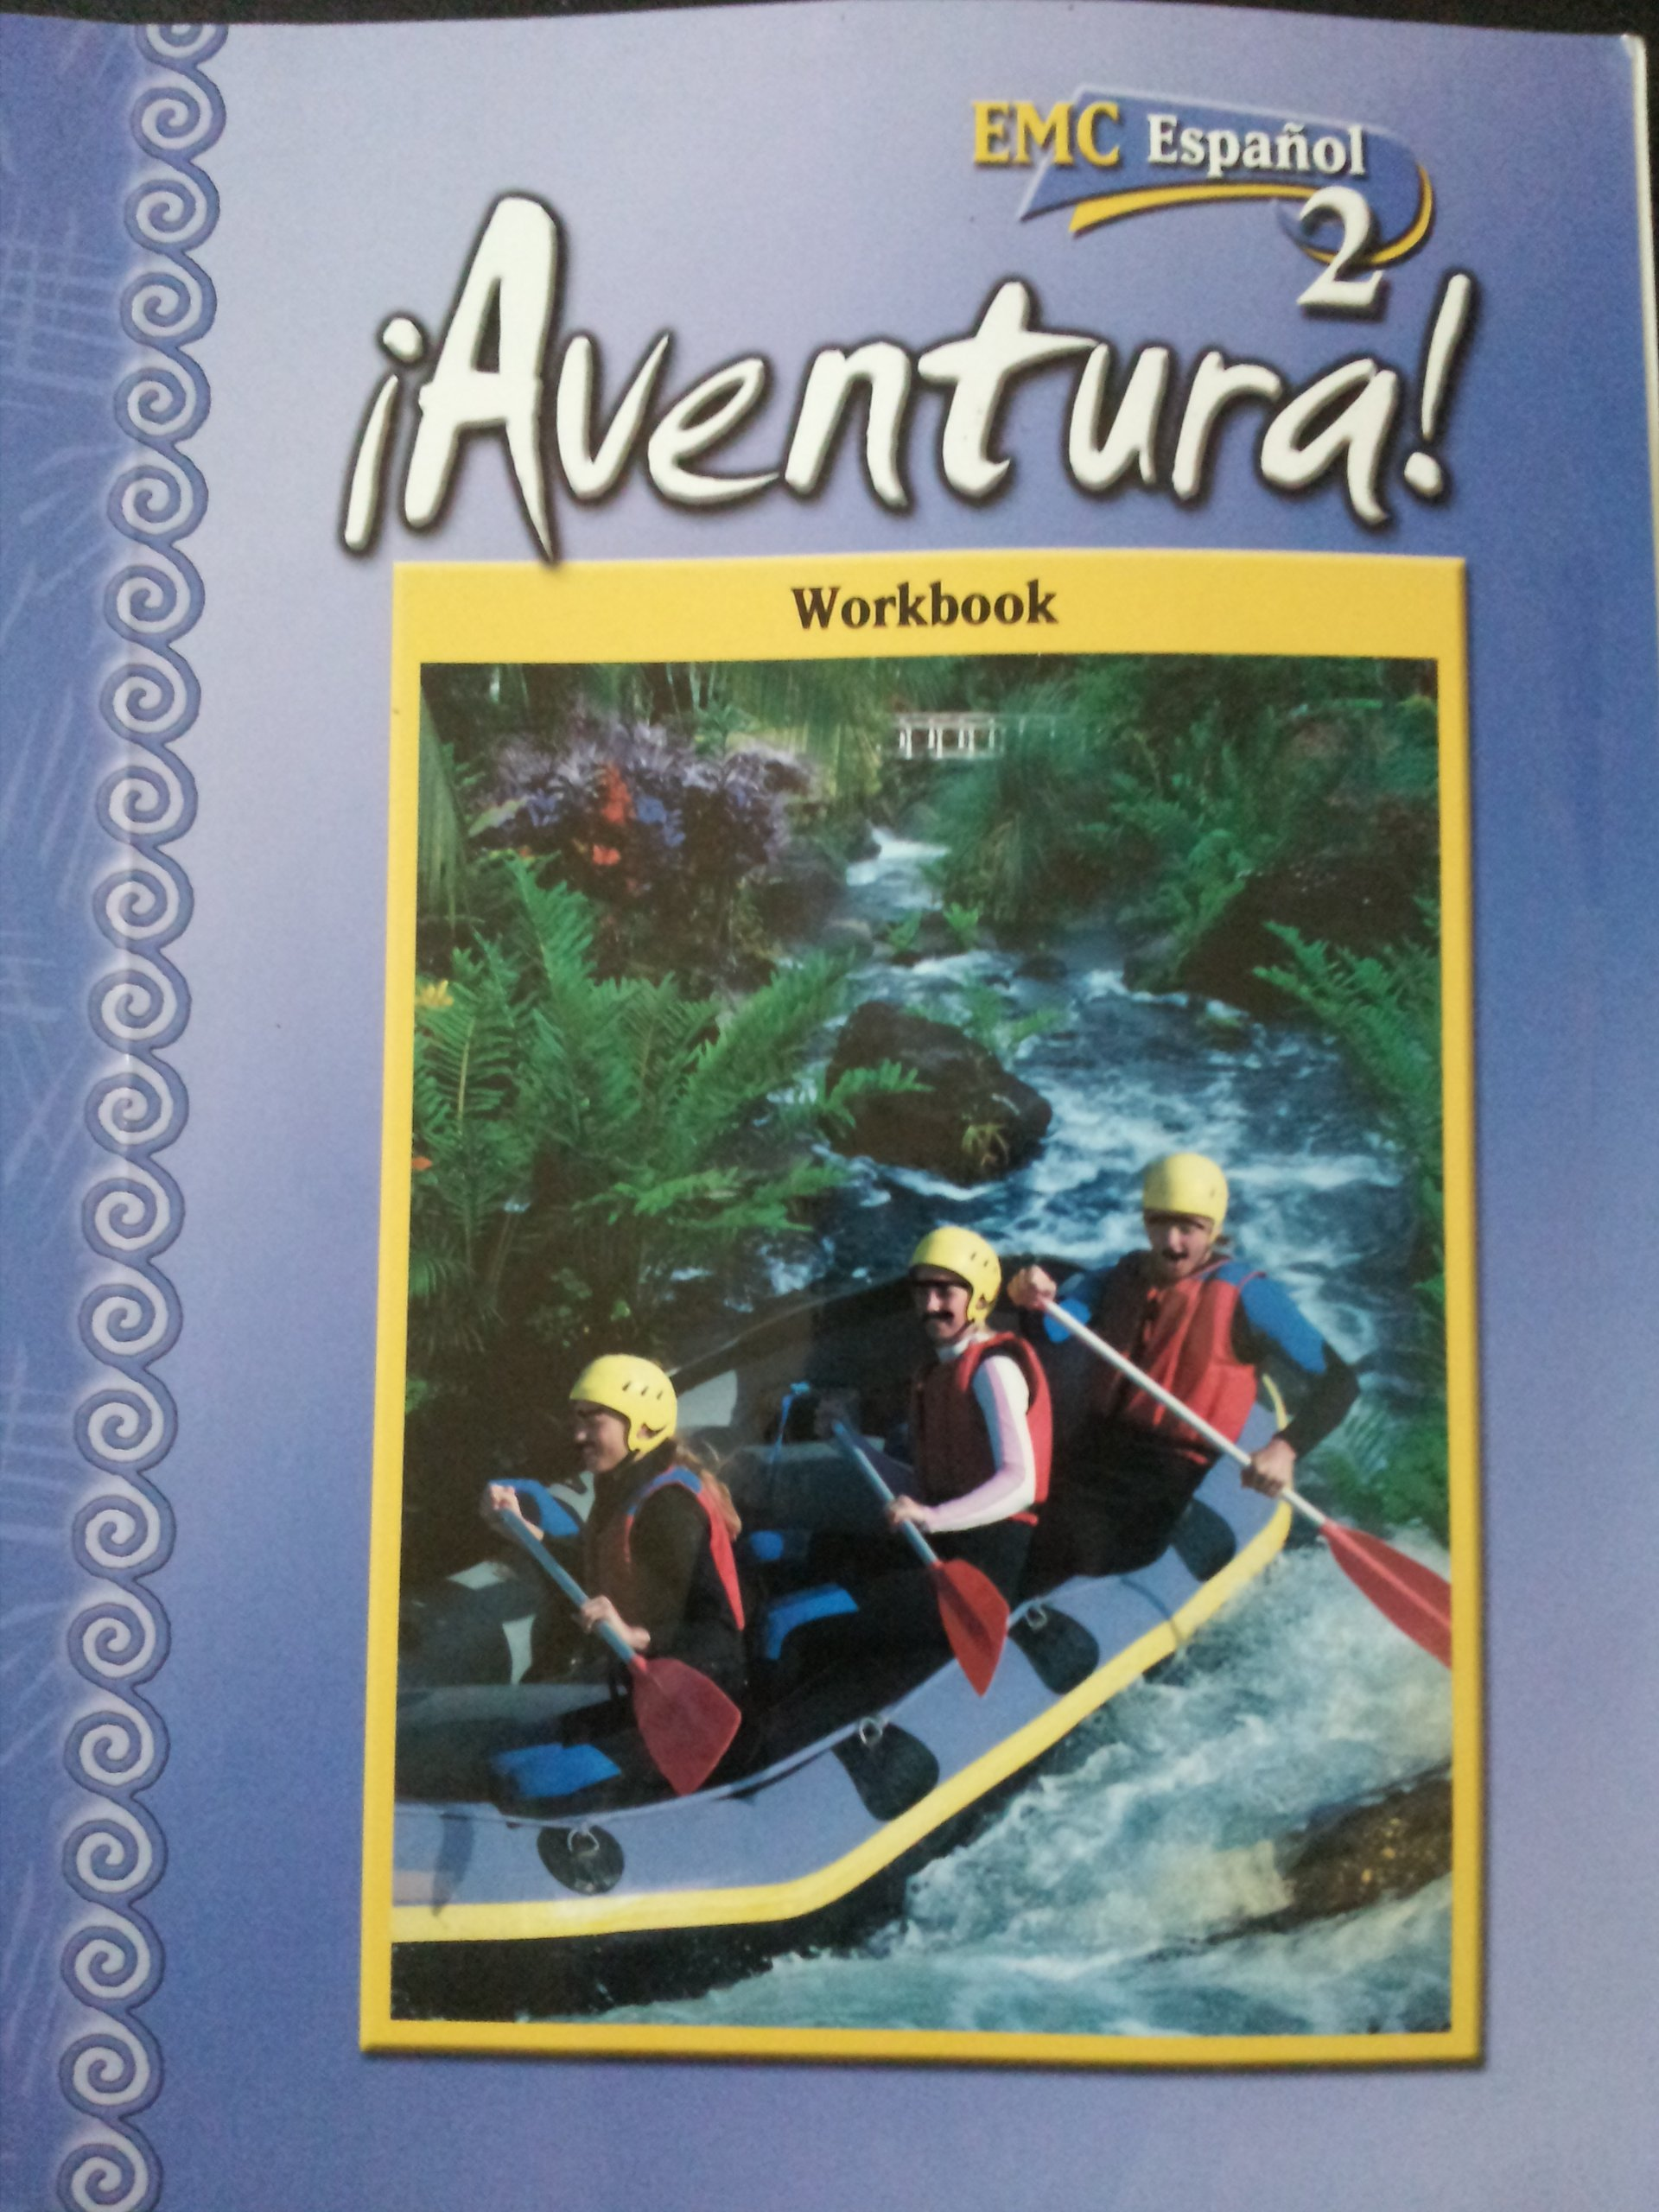 Aventura 2 workbook answers ebook 80 off choice image free ebooks aventura 2 workbook answers ebook 80 off fandeluxe Choice Image